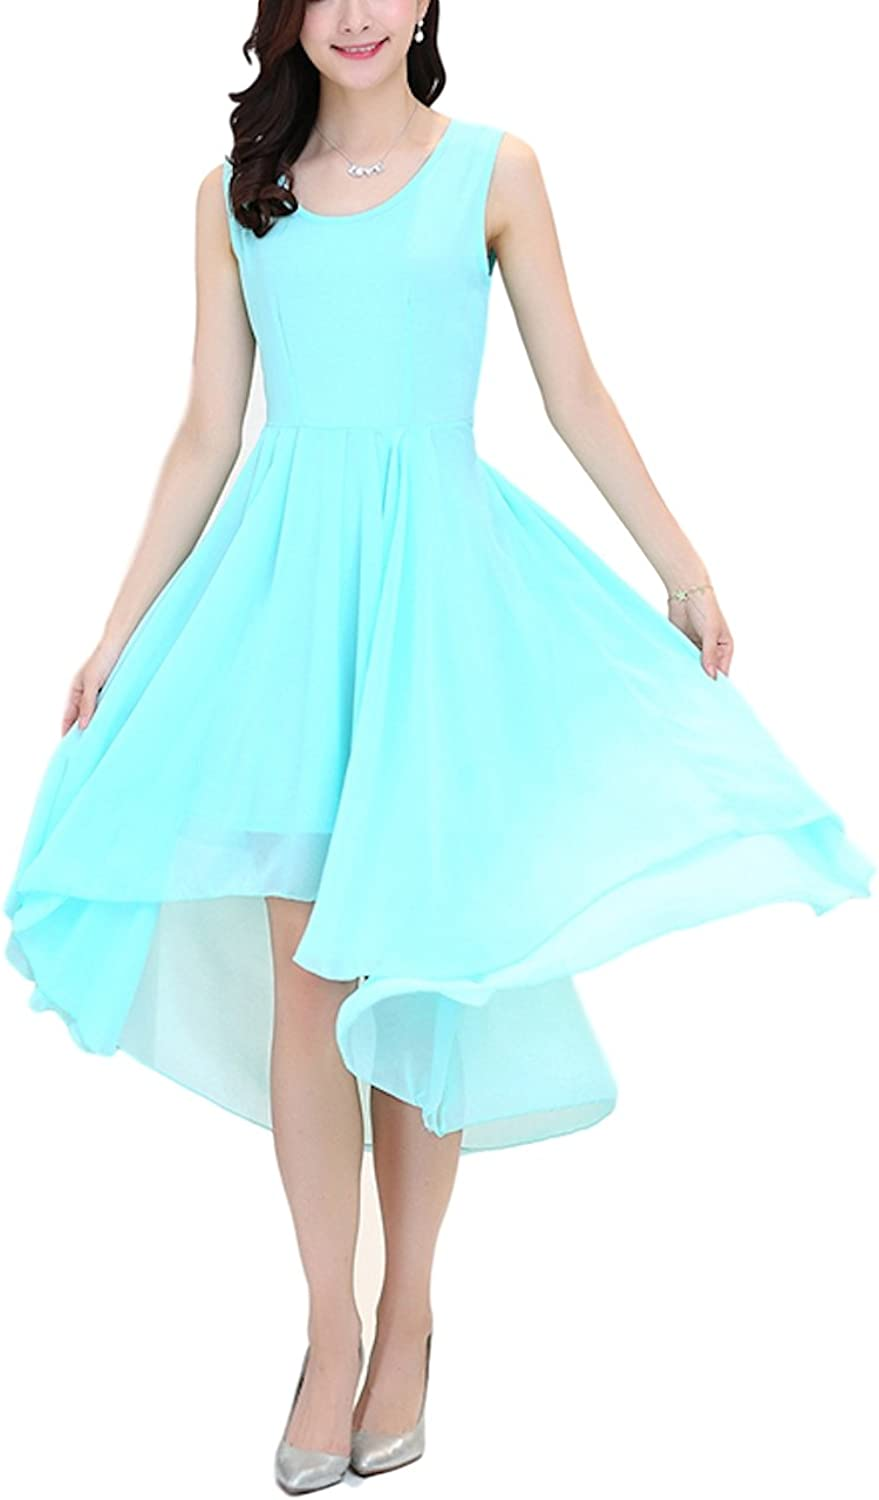 Sekitobajapan.inc a line Sleeveless high Low Dress for Women Sky bluee and Turquoise